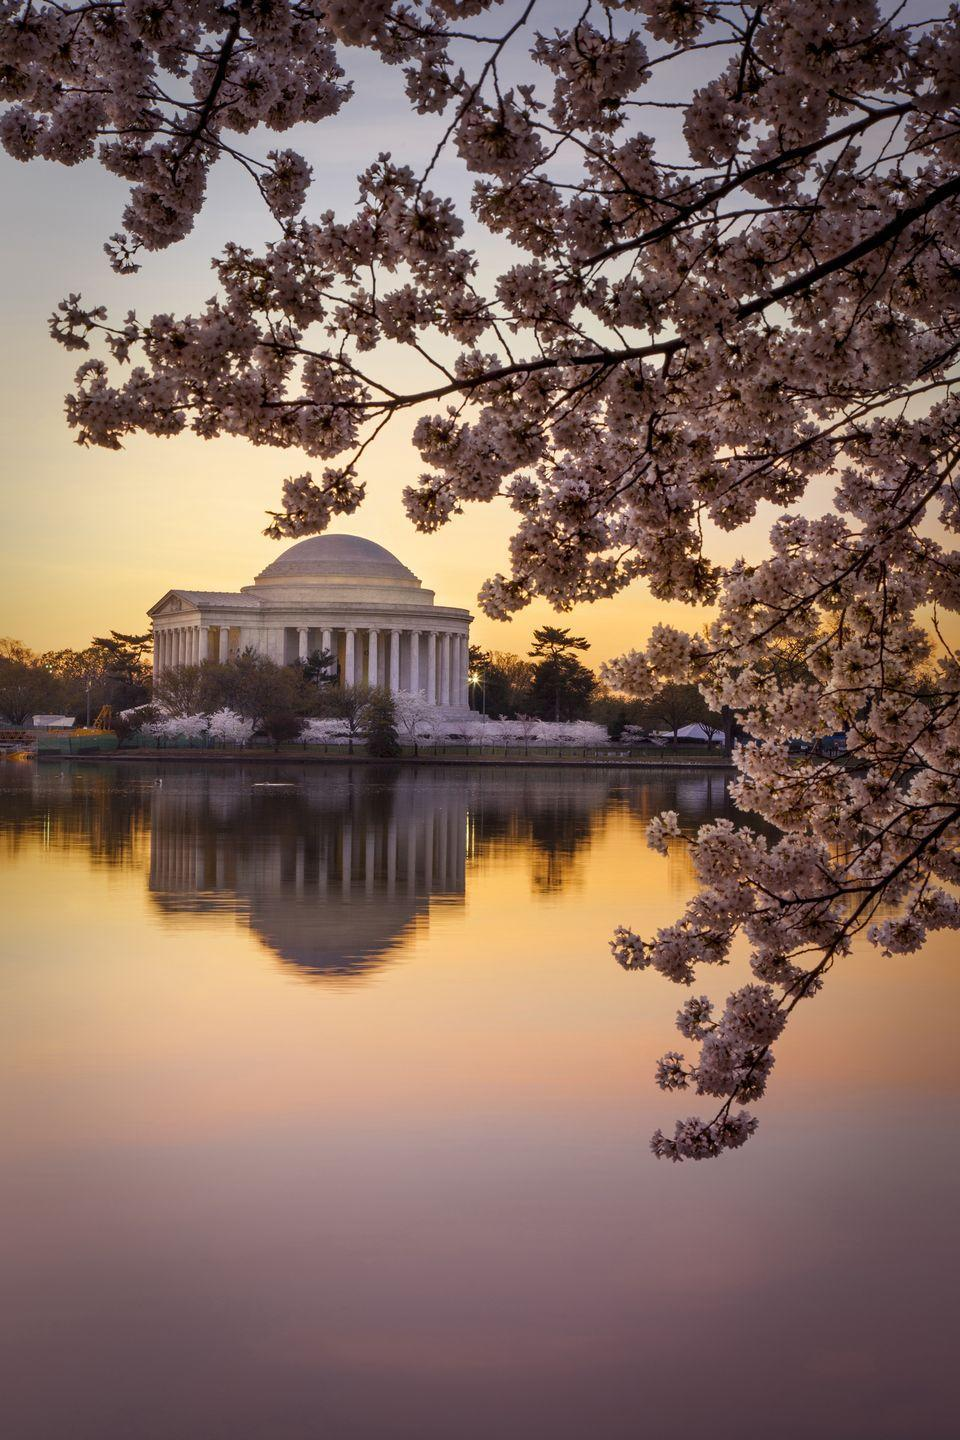 <p><strong>Where: </strong>Thomas Jefferson Memorial, Washington D.C.</p><p><strong>Why We Love It: </strong>Dedicated to the third President of the United States, this neoclassical building was inspired by the Roman Pantheon and Jefferson's own design for the Rotunda at the University of Virginia.</p>